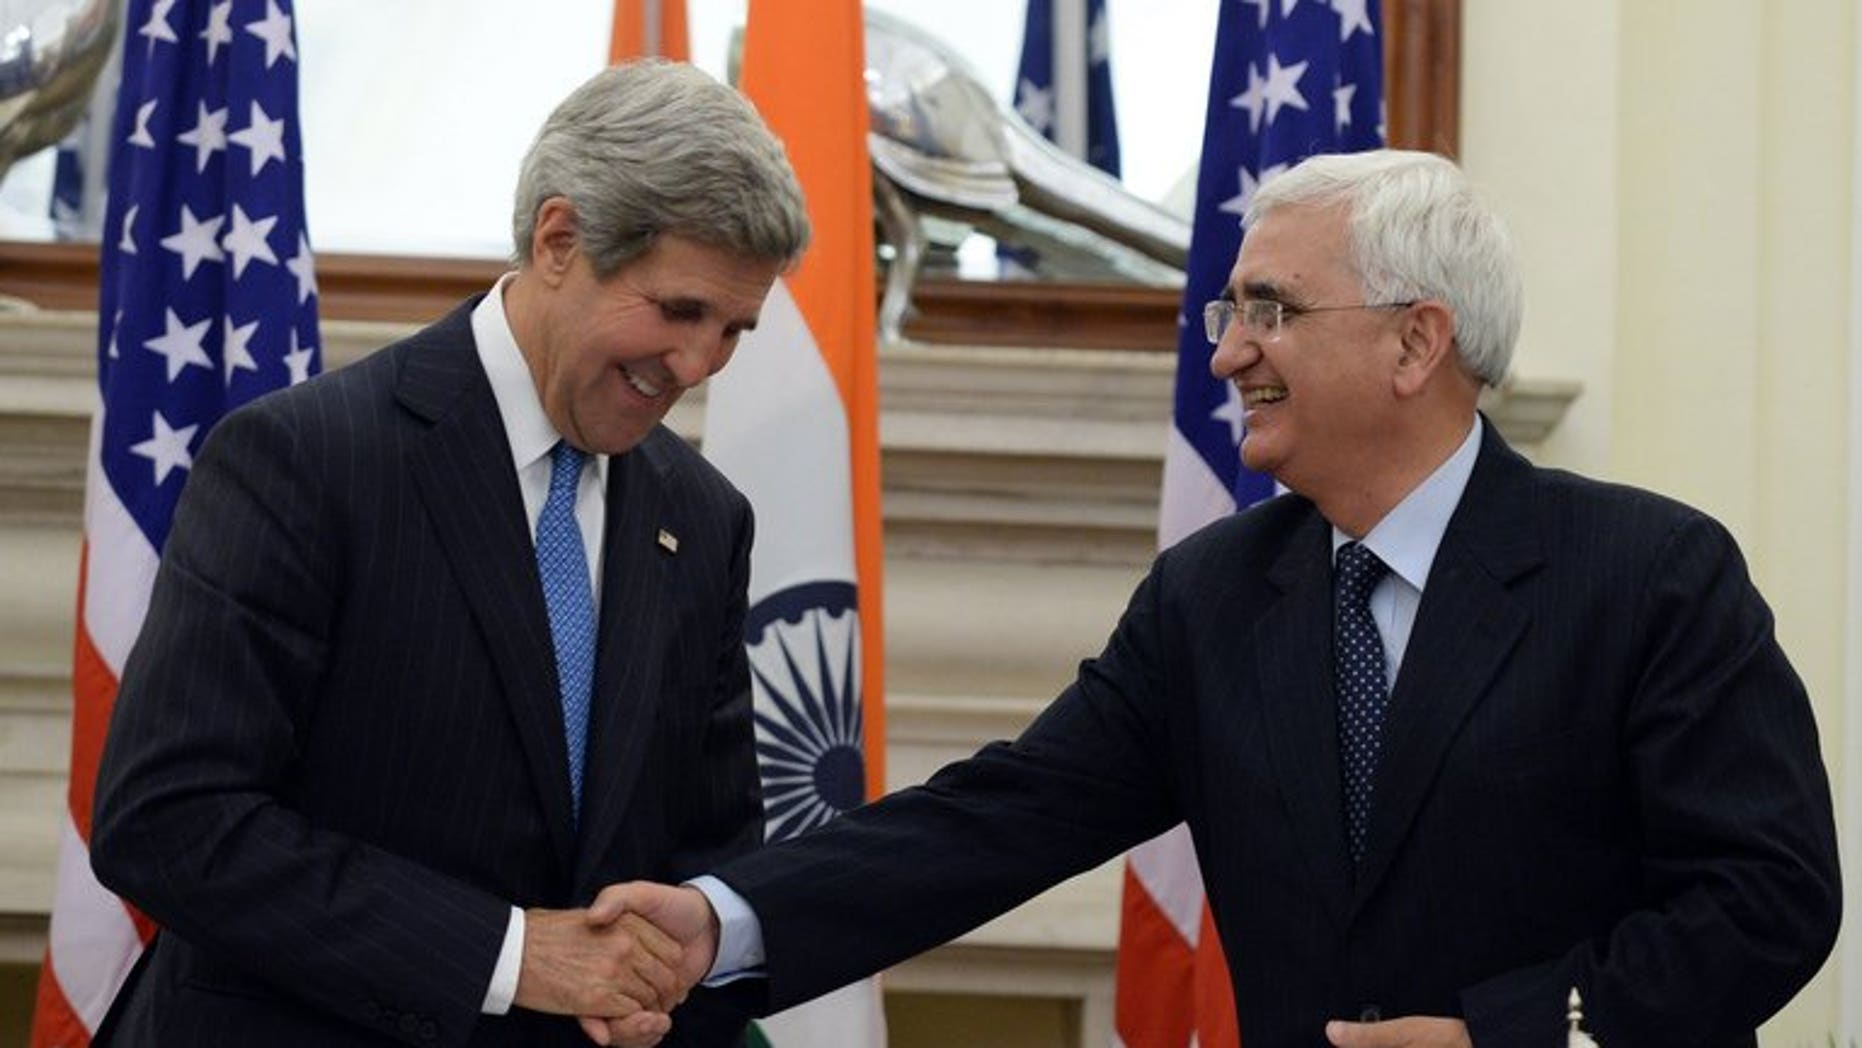 US Secretary of State John Kerry (L) shakes hands with India's foreign minister, Salman Khurshid, after a press conference in New Delhi, on June 24, 2013. Khurshid on Tuesday defended the vast US surveillance programme of phone logs and Internet data revealed by intelligence leaker Edward Snowden.